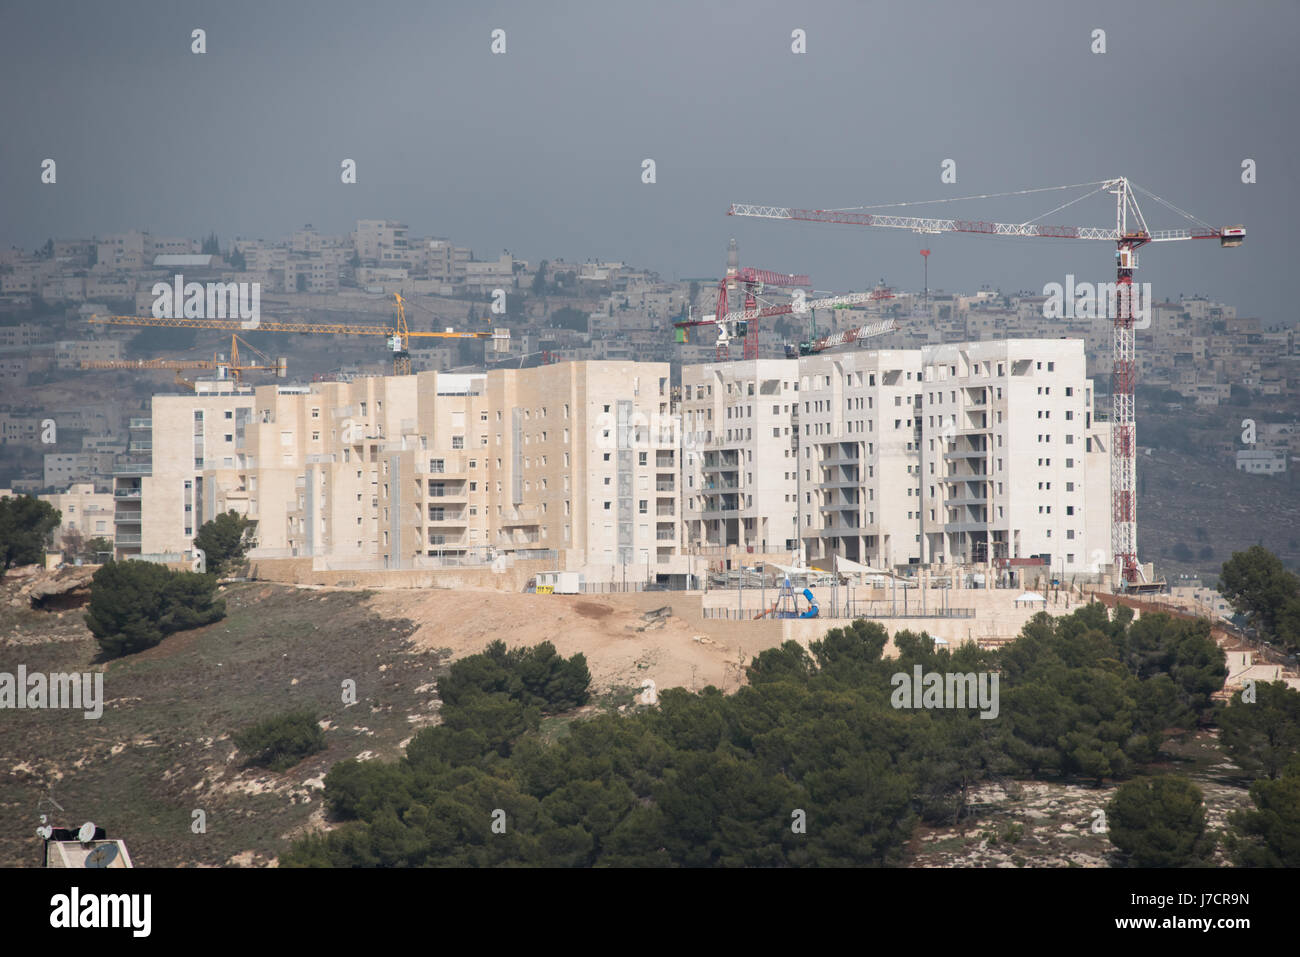 Construction cranes tower over expansion of Har Homa, an Israeli settlement build on land taken from the West Bank - Stock Image